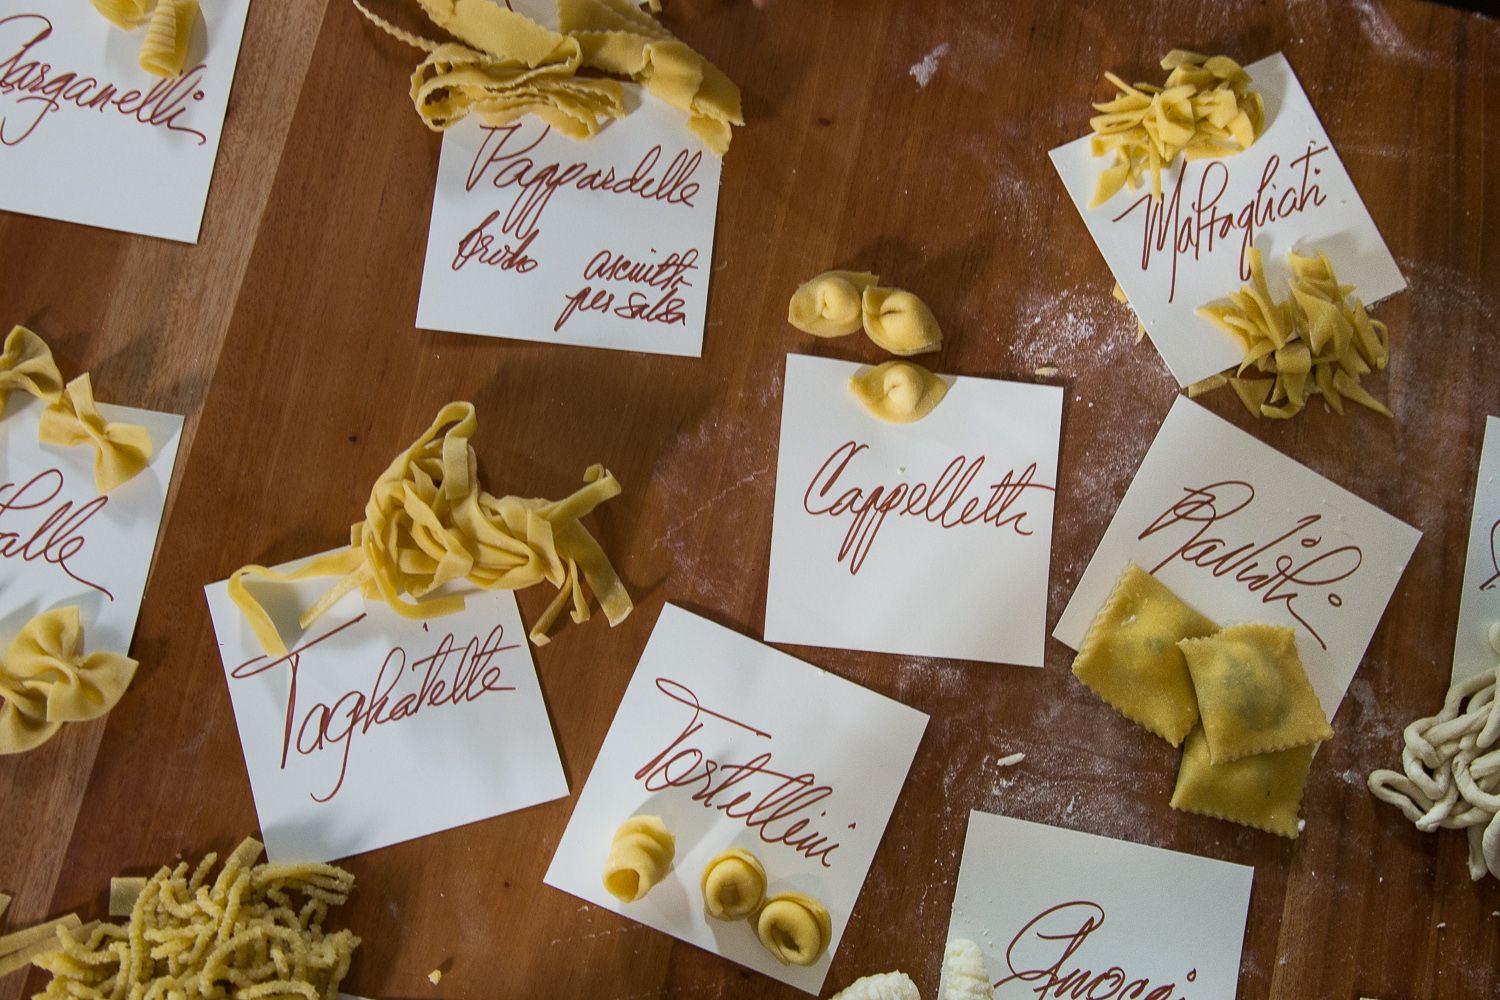 12 types of fresh pasta included in the class